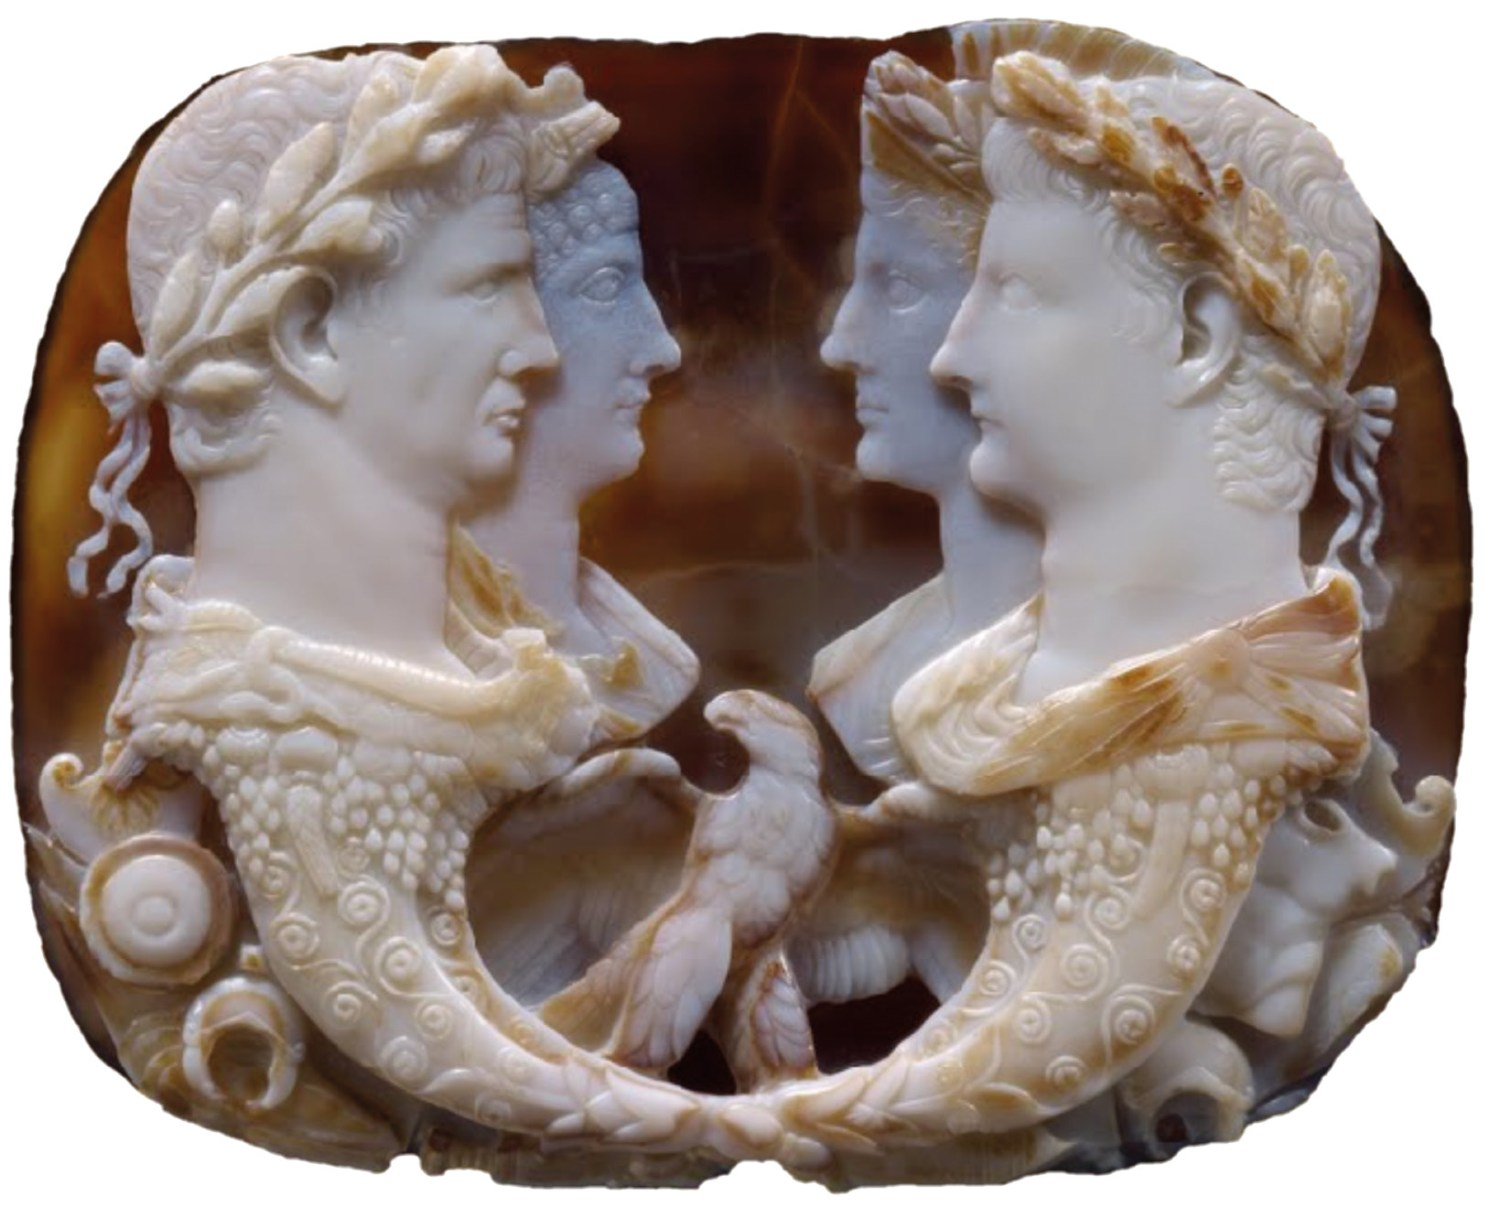 9. The Gemma Claudia, a five-layered cameo, sardonyx, circa AD 49, showing Claudius and Agrippina the Younger (left) and her parents, Germanicus and Agrippina the Elder (right). The design symbolises the integrity of the dynasty through the combined descent from Augustus and Livia. H. 12cm. Photograph: Gryffindor. 10. and 11. Bronze coin, AD 41 48, showing Messalina, Claudius' third wife and first empress (obverse). The coin unofficially gives her the Greek equivalent title of Augusta (CEBACTH), a title she did not receive in life. The reverse shows Zeus Aëtophorus. D. 18mm. Photograph: Classical Numismatic Group. 12. and 13. Egyptian silver tetradrachm, AD 64 65, from Alexandria, with Nero (obverse) and Poppaea (reverse), his second wife, who was made empress in AD 63. D. 24mm.